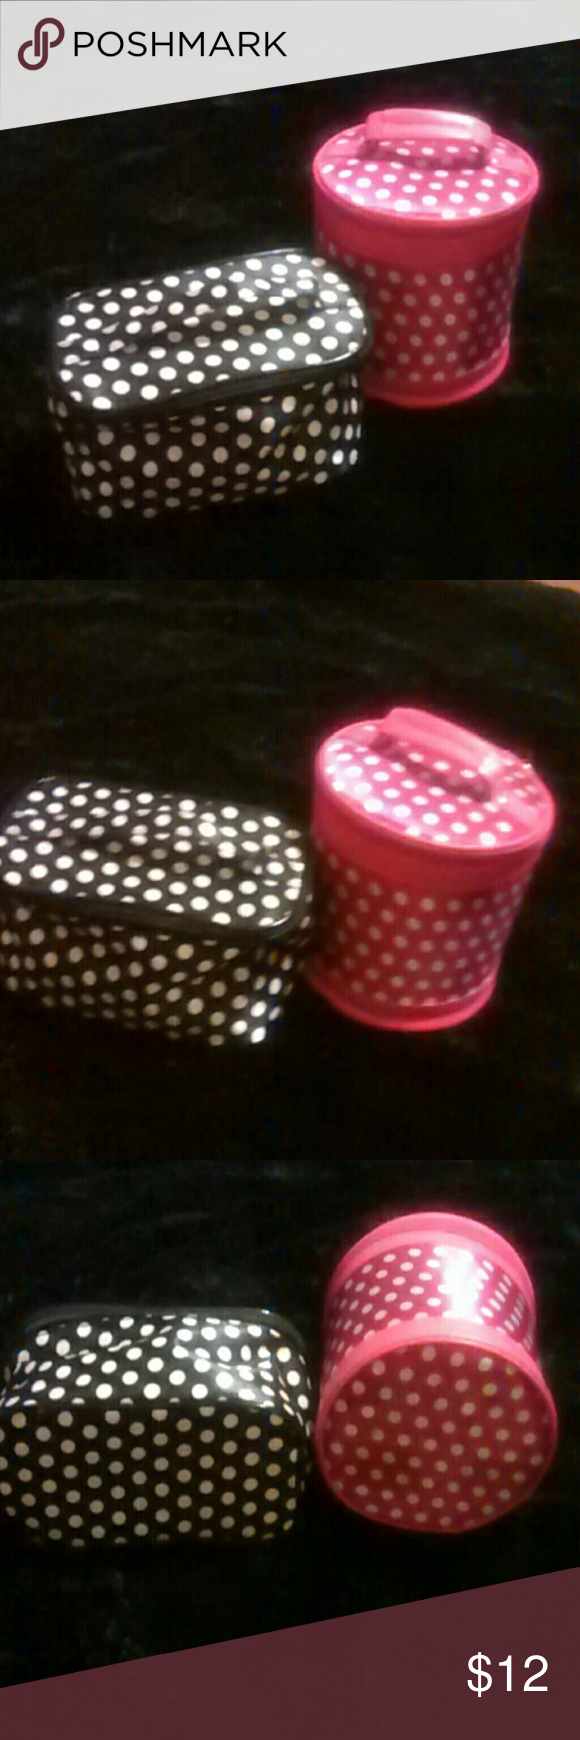 Polkadot Make Up Bag Bundle There are two very nice used very little make up bags. In great condition. Polkadot bags adorable. Happy Poshing??  Any questions please feel free to ask. Bags Cosmetic Bags & Cases